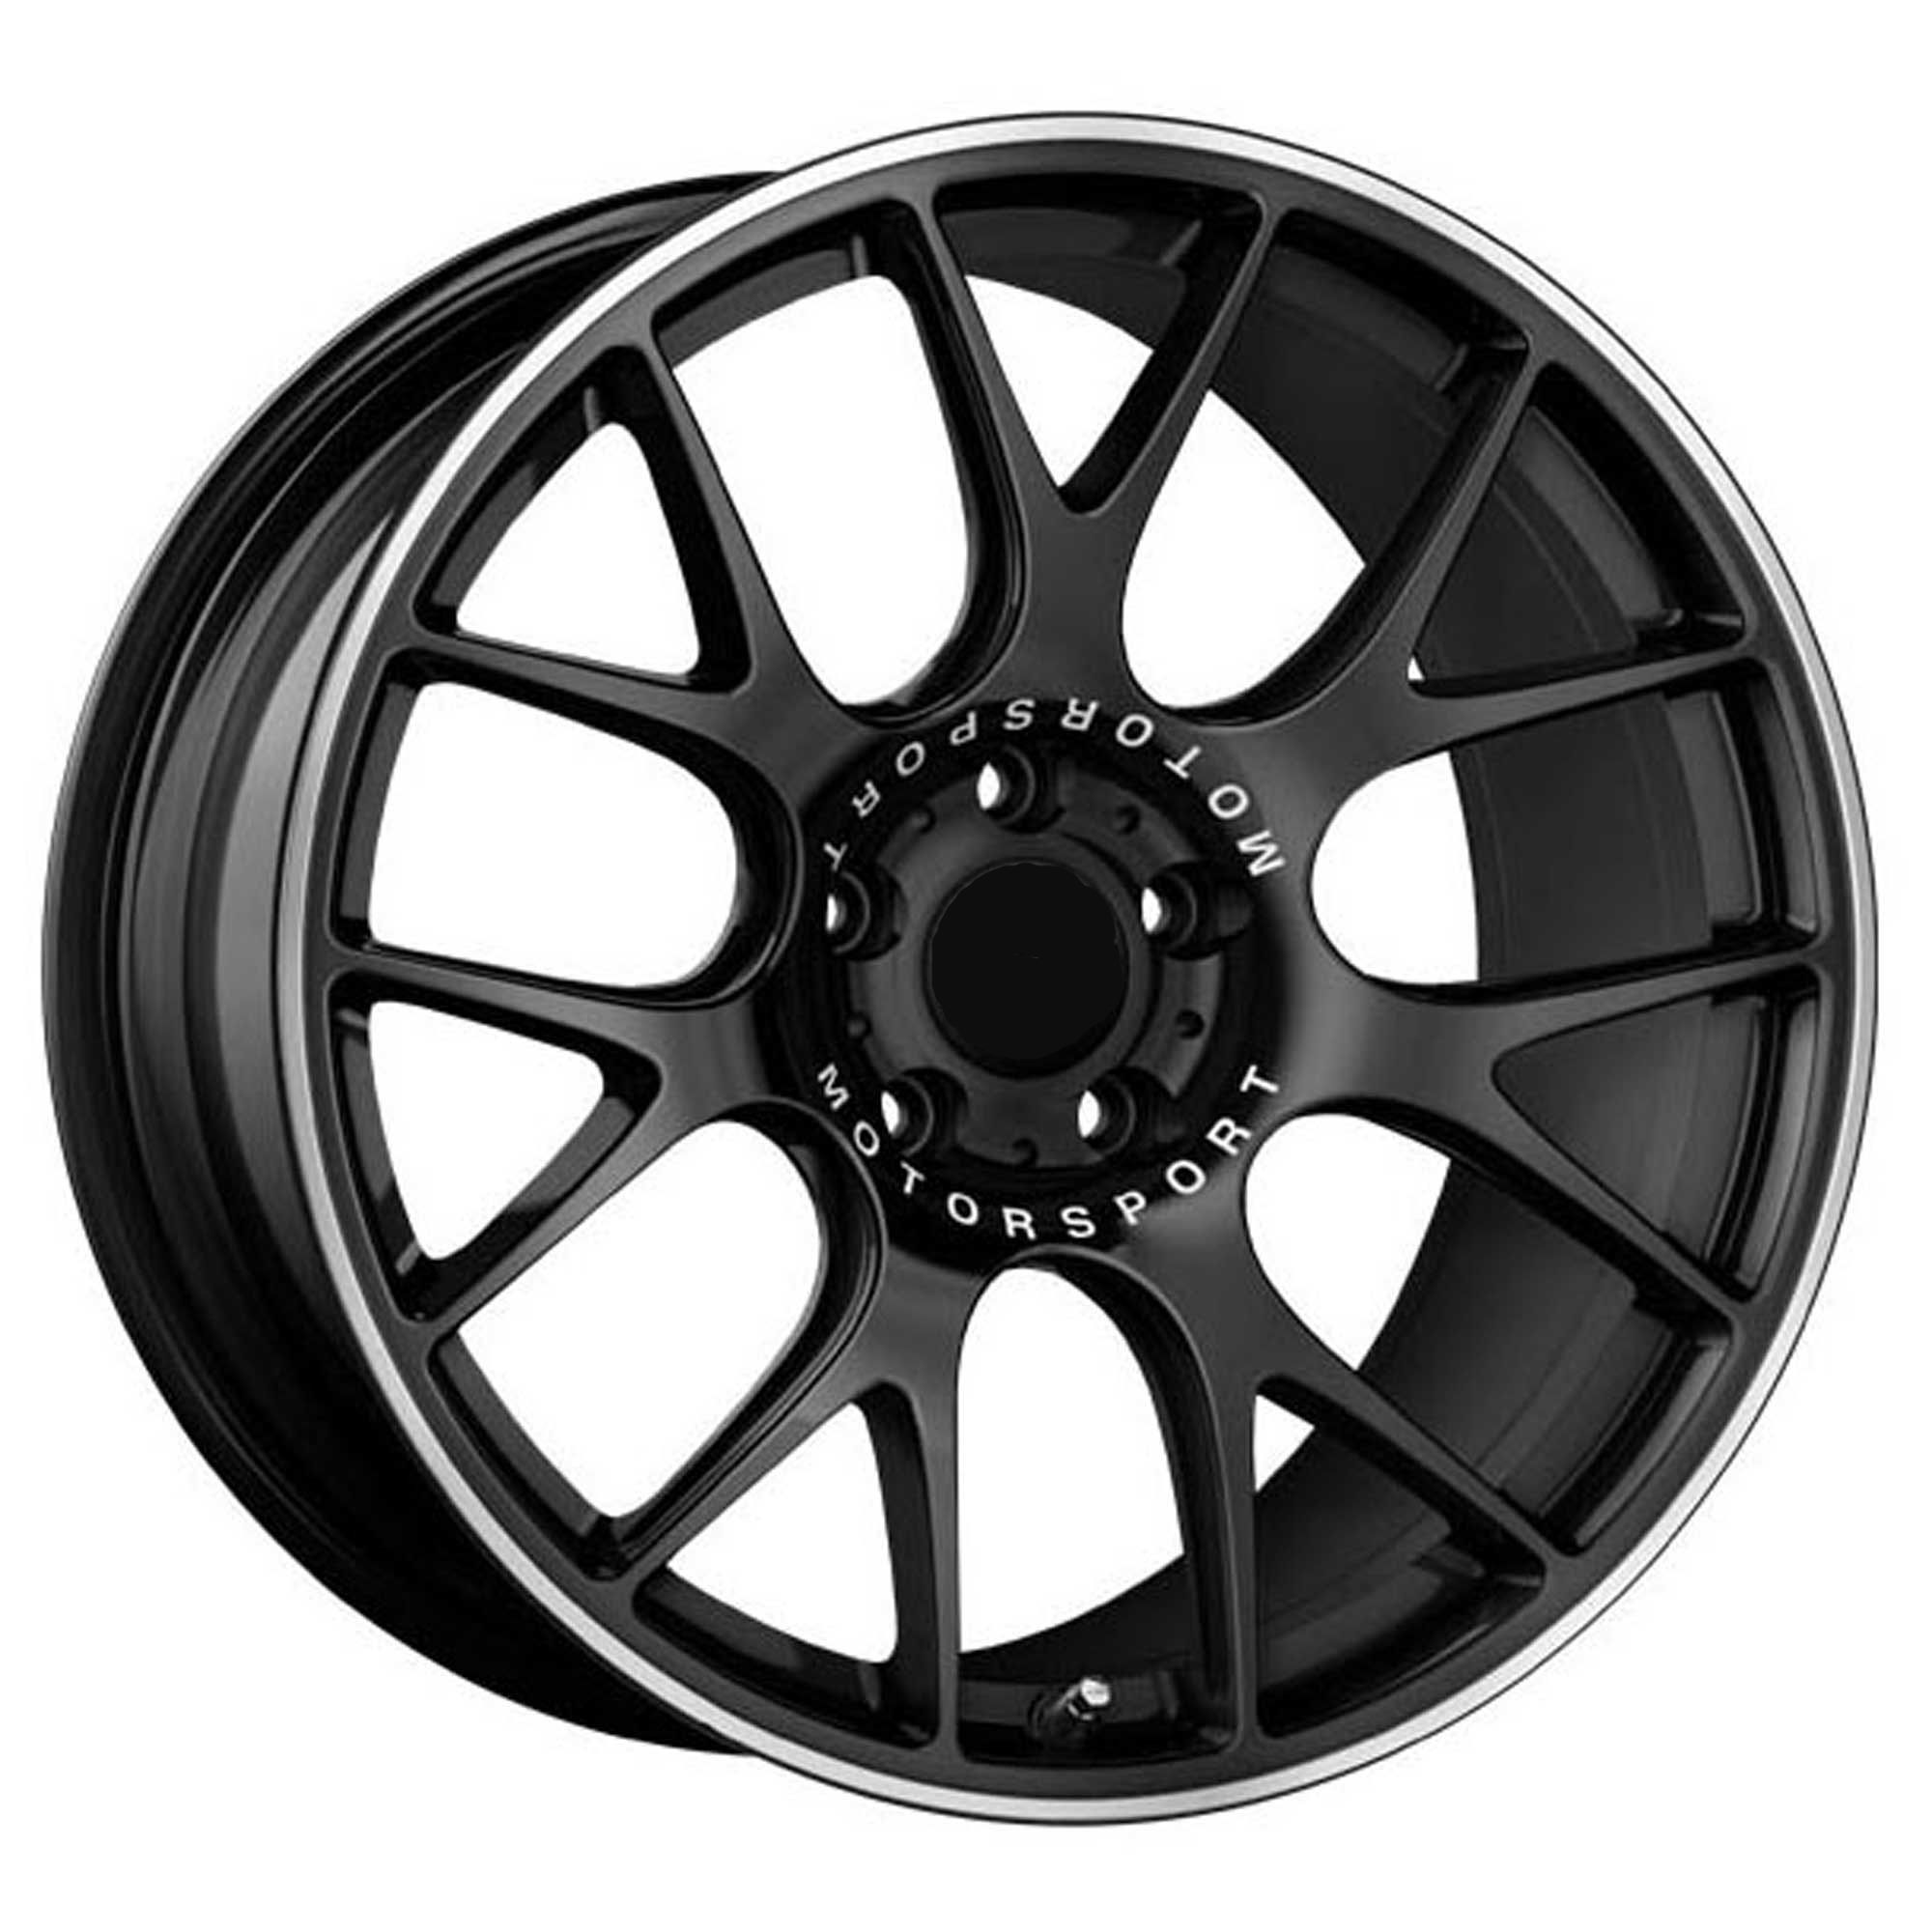 styles showthread attachment forums rim rims spoke star bmw staggered